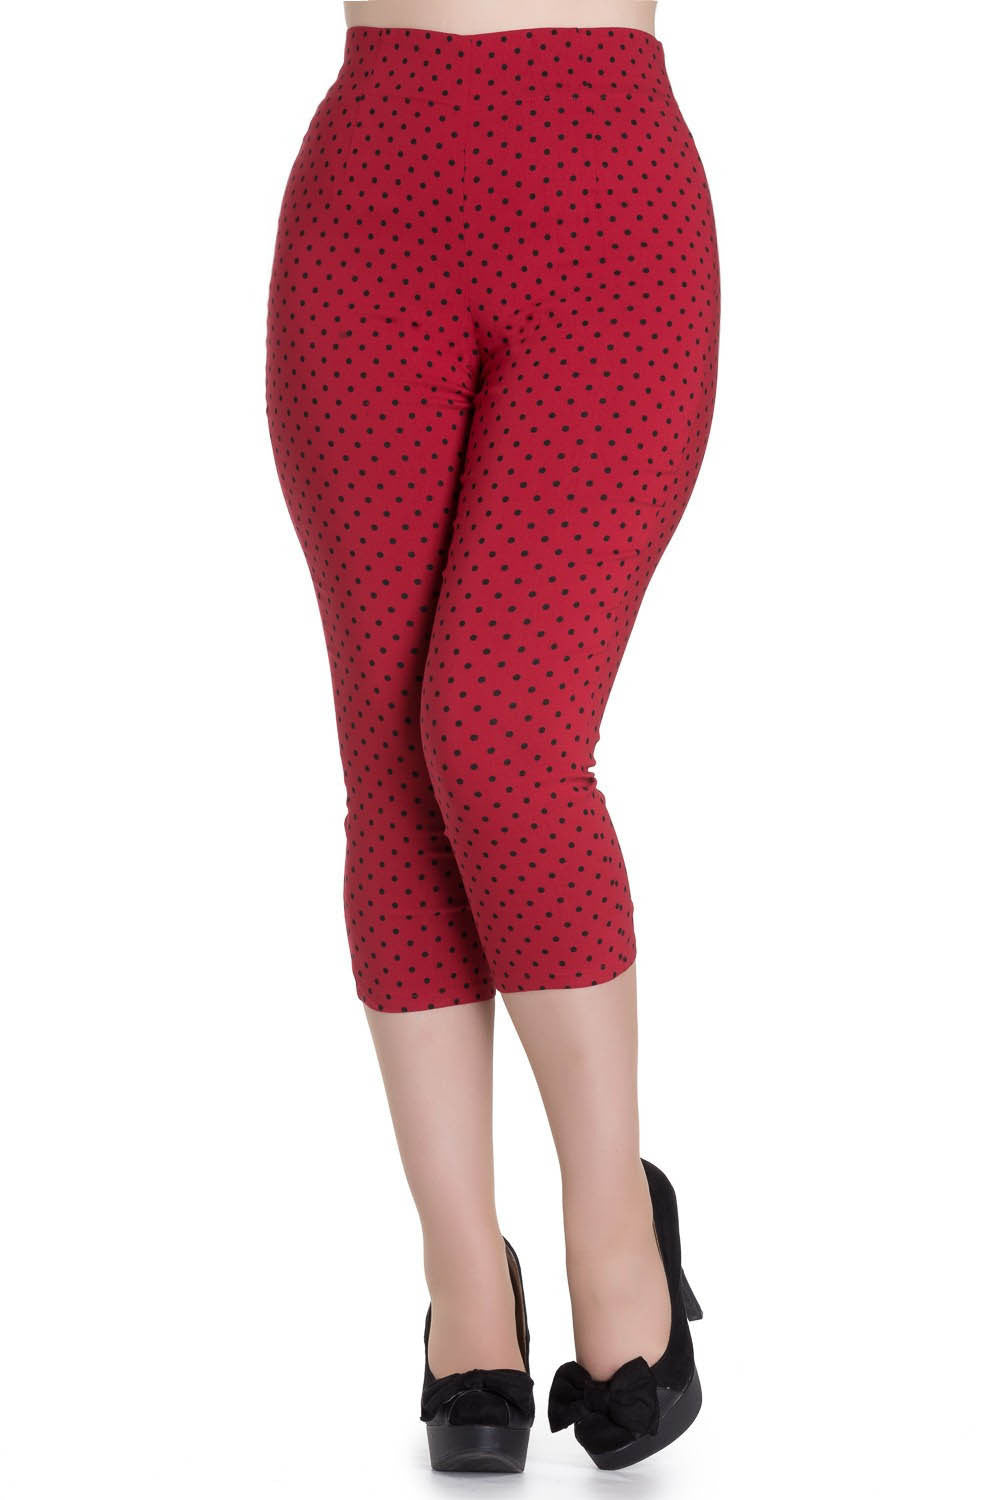 9e6684bc6e8 High Waist Retro Capris in Red   Black Polka Dot by Hell Bunny ...